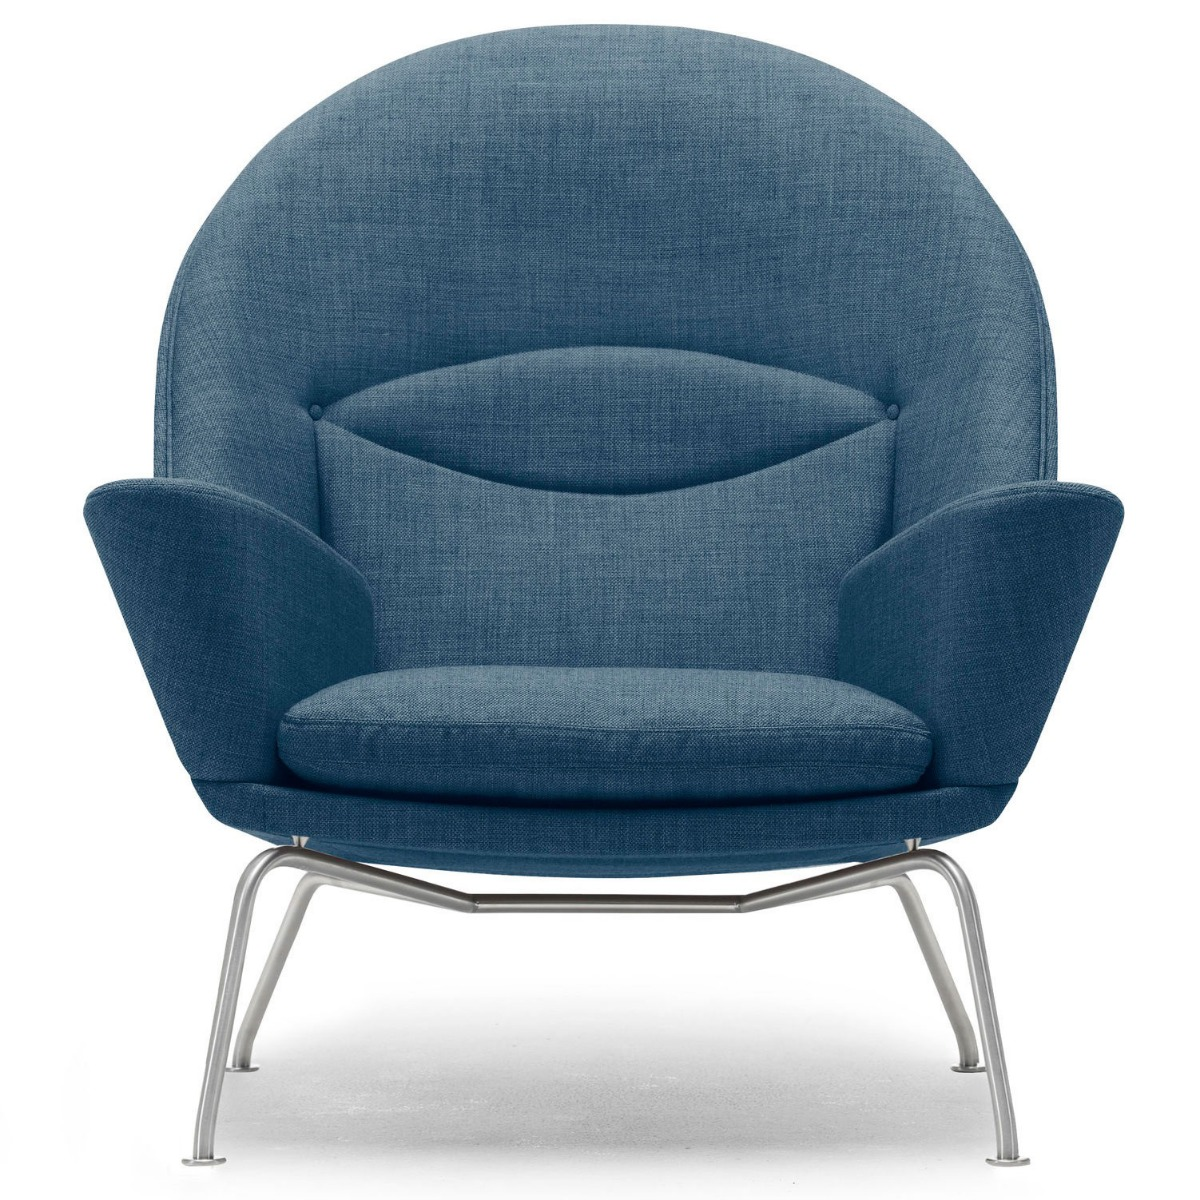 Oculus og Wing Chair på kampagne